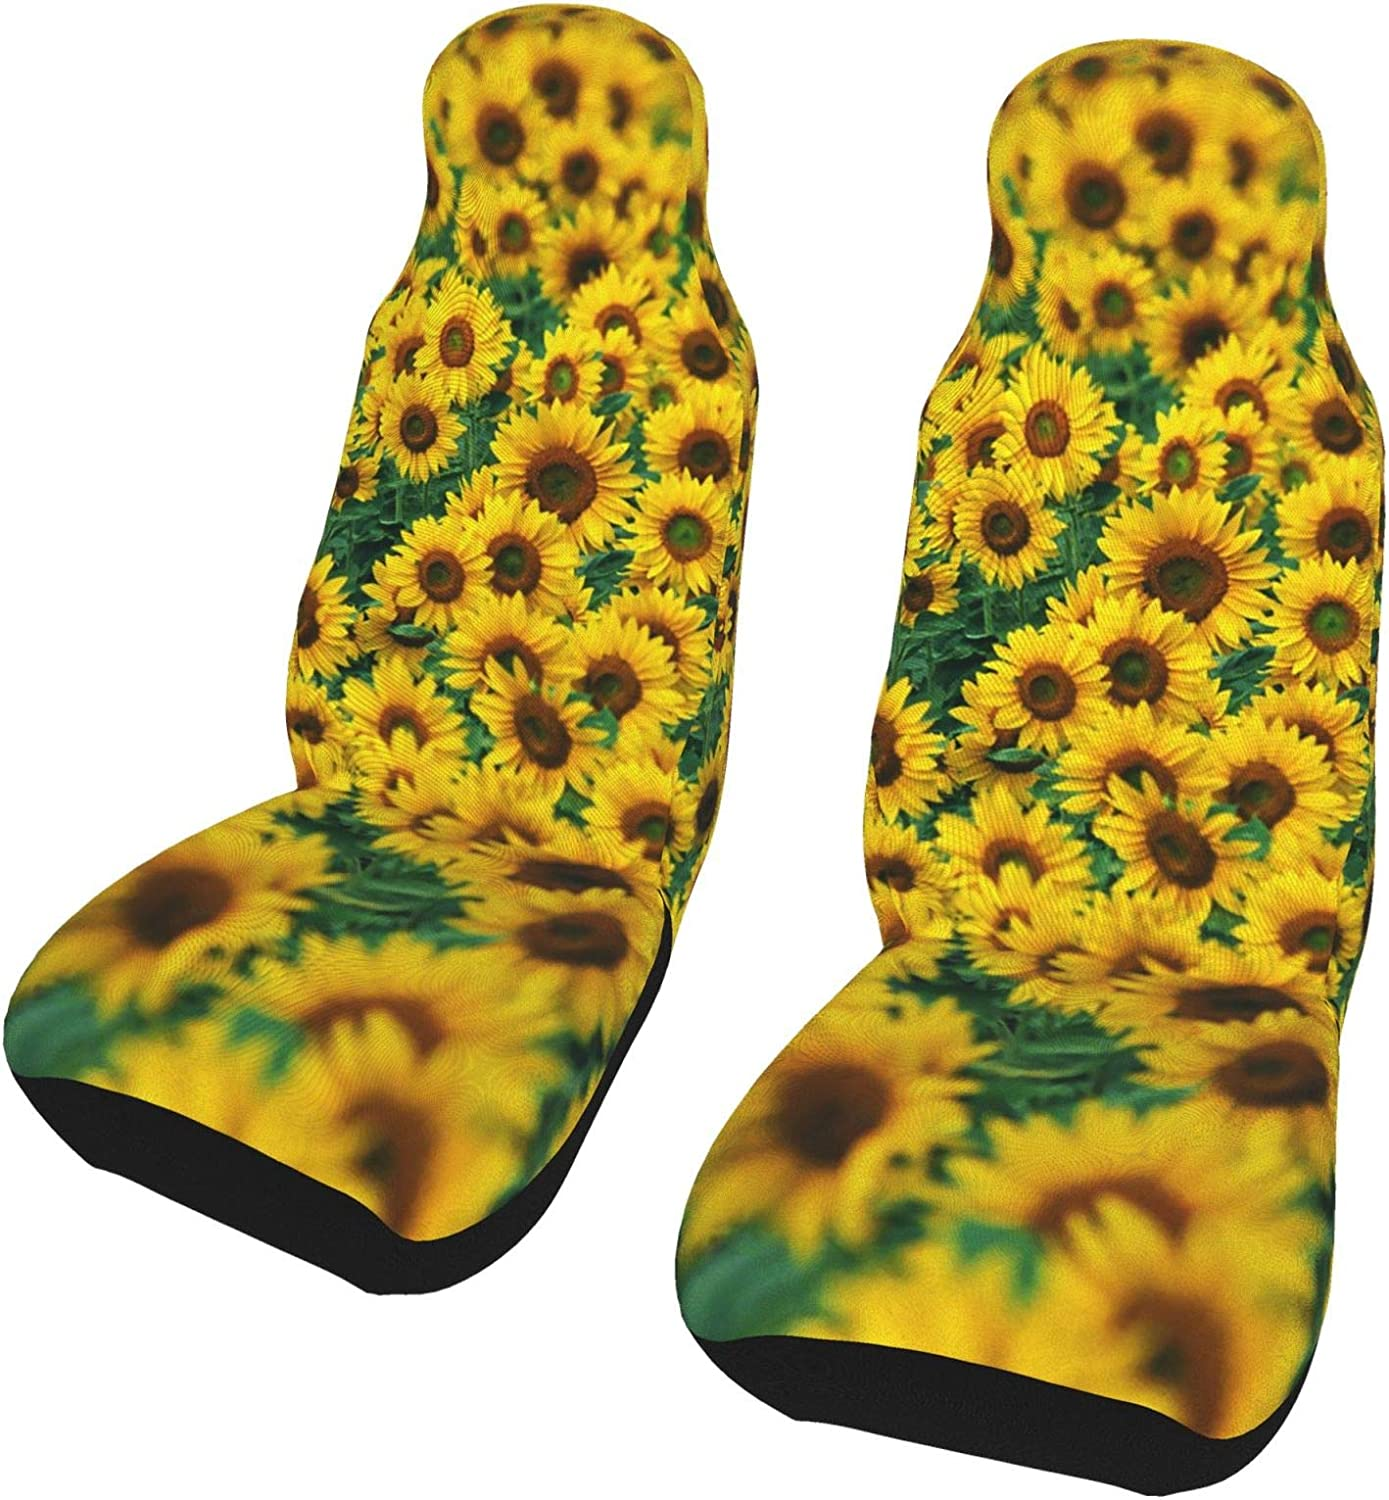 Car Seat supreme Cover for Men Women Scenery Outstanding Pac Sunflowers Automotive 2